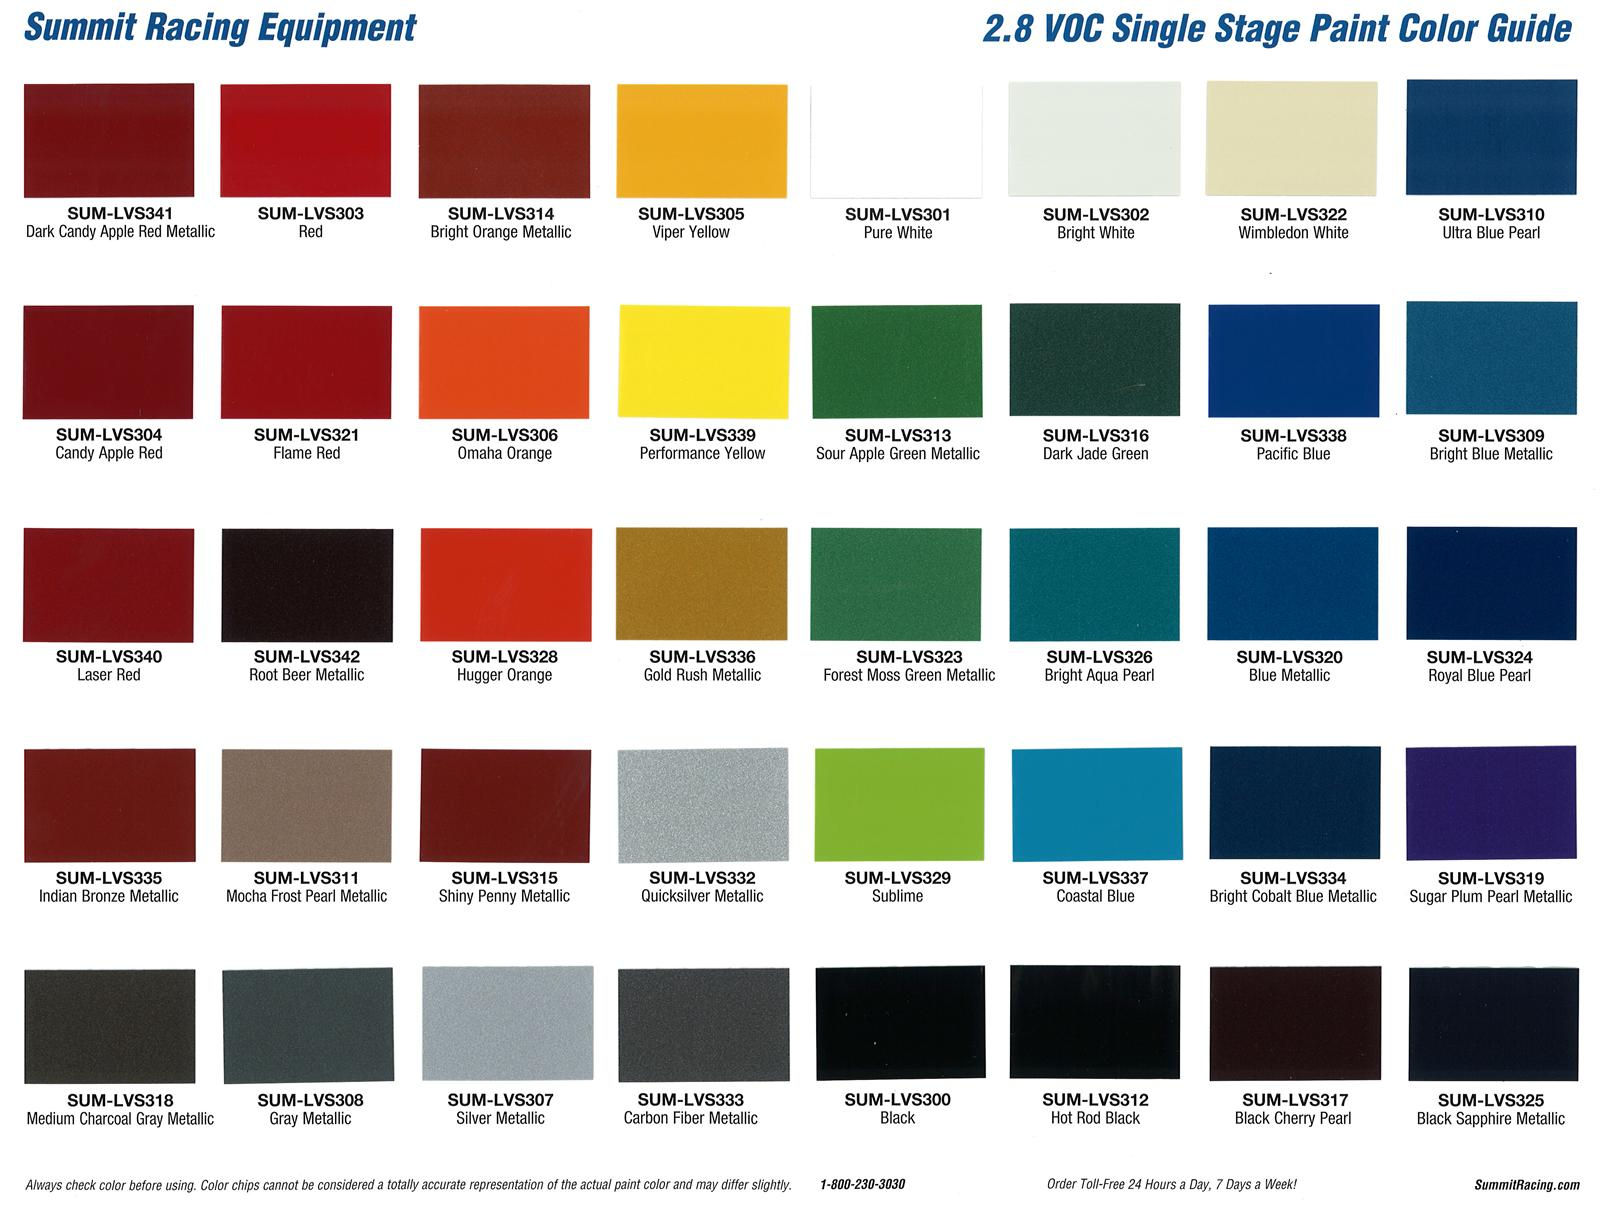 Kilz interior paint colors Paint colors interior